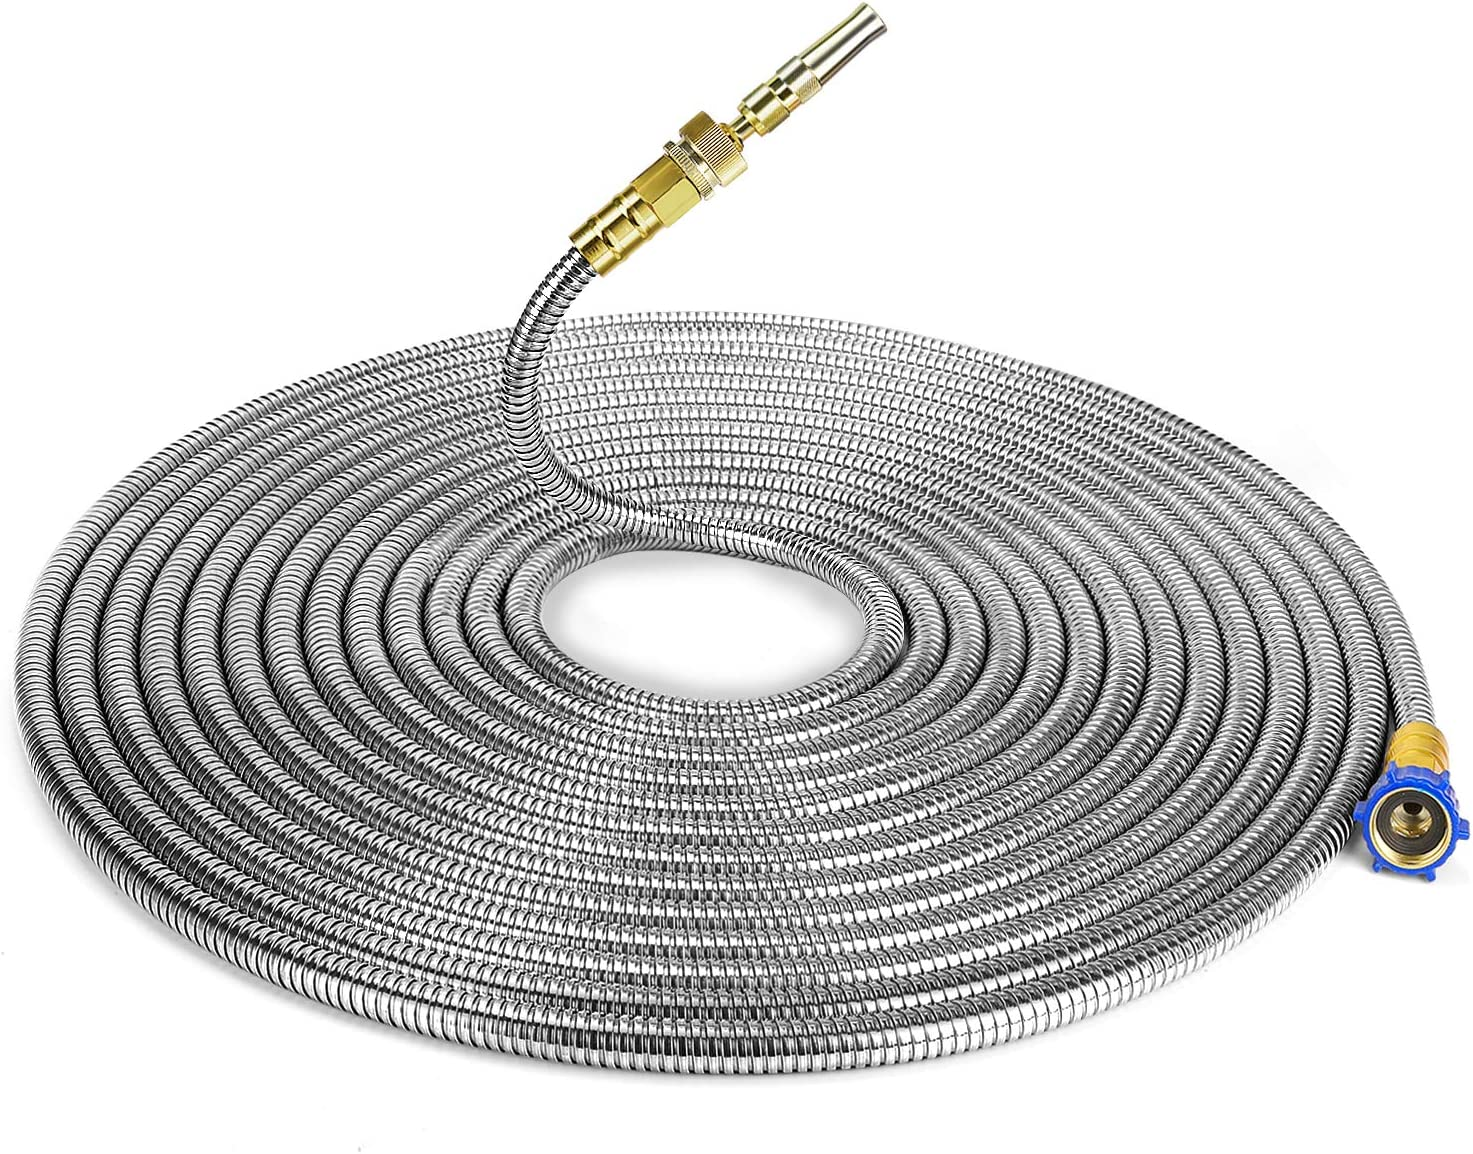 304 Stainless Steel Garden Hose-3 Feet Connector Extension,Short Metal Hose with Solid Brass Connector Metal Fittings Water Hose and Adjustable Nozzle,for Hose Reel//RV//Dehumidifier